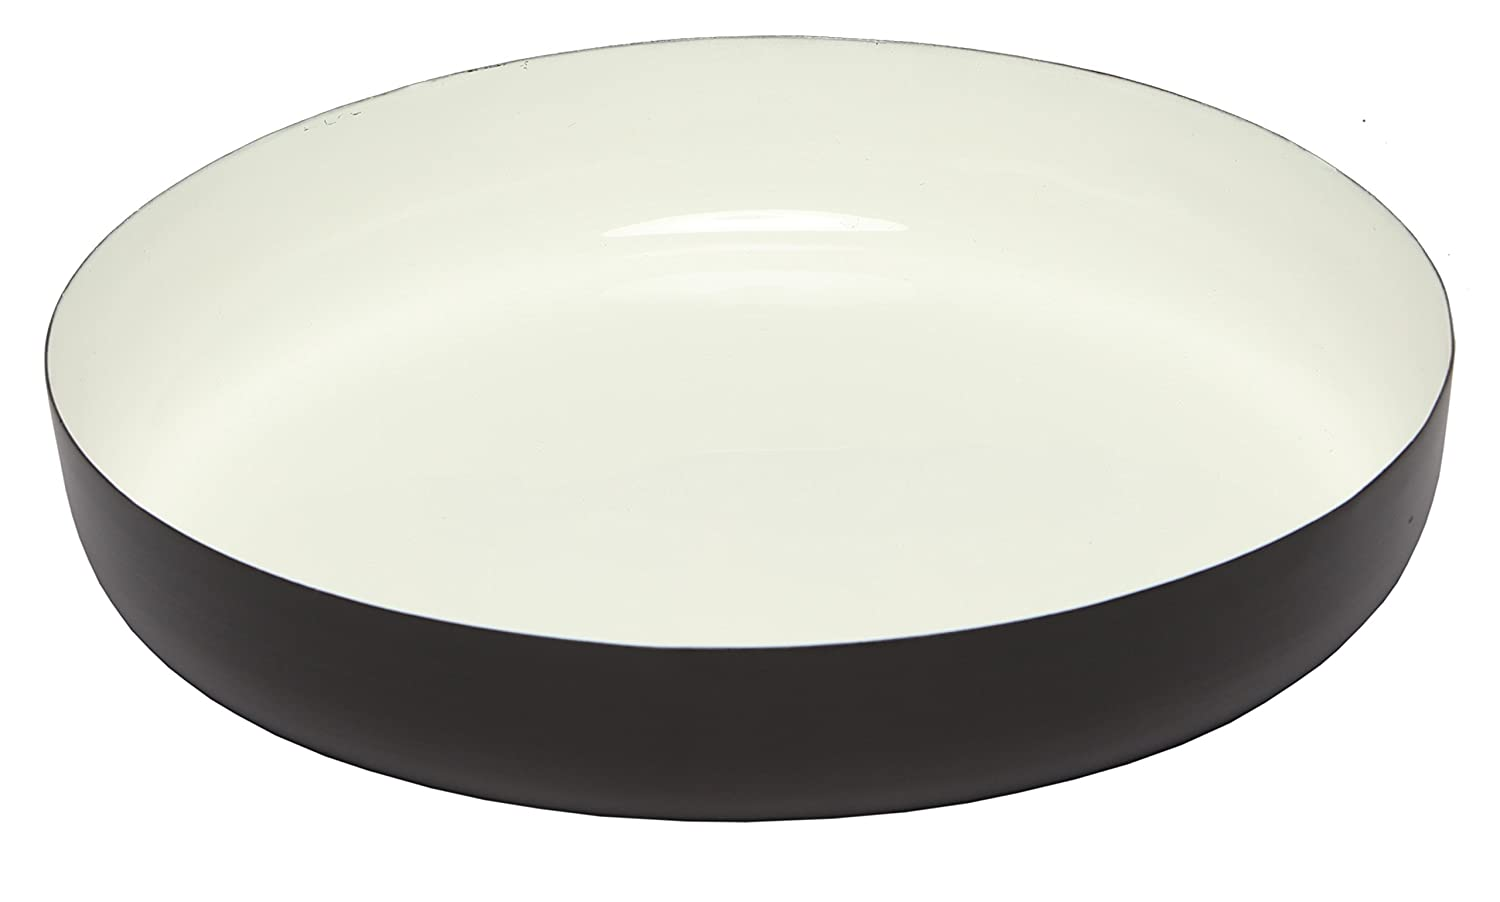 6-inch Round Platter Color Pack of 12 724190540138 Melange Home Decor Modern Collection Gray